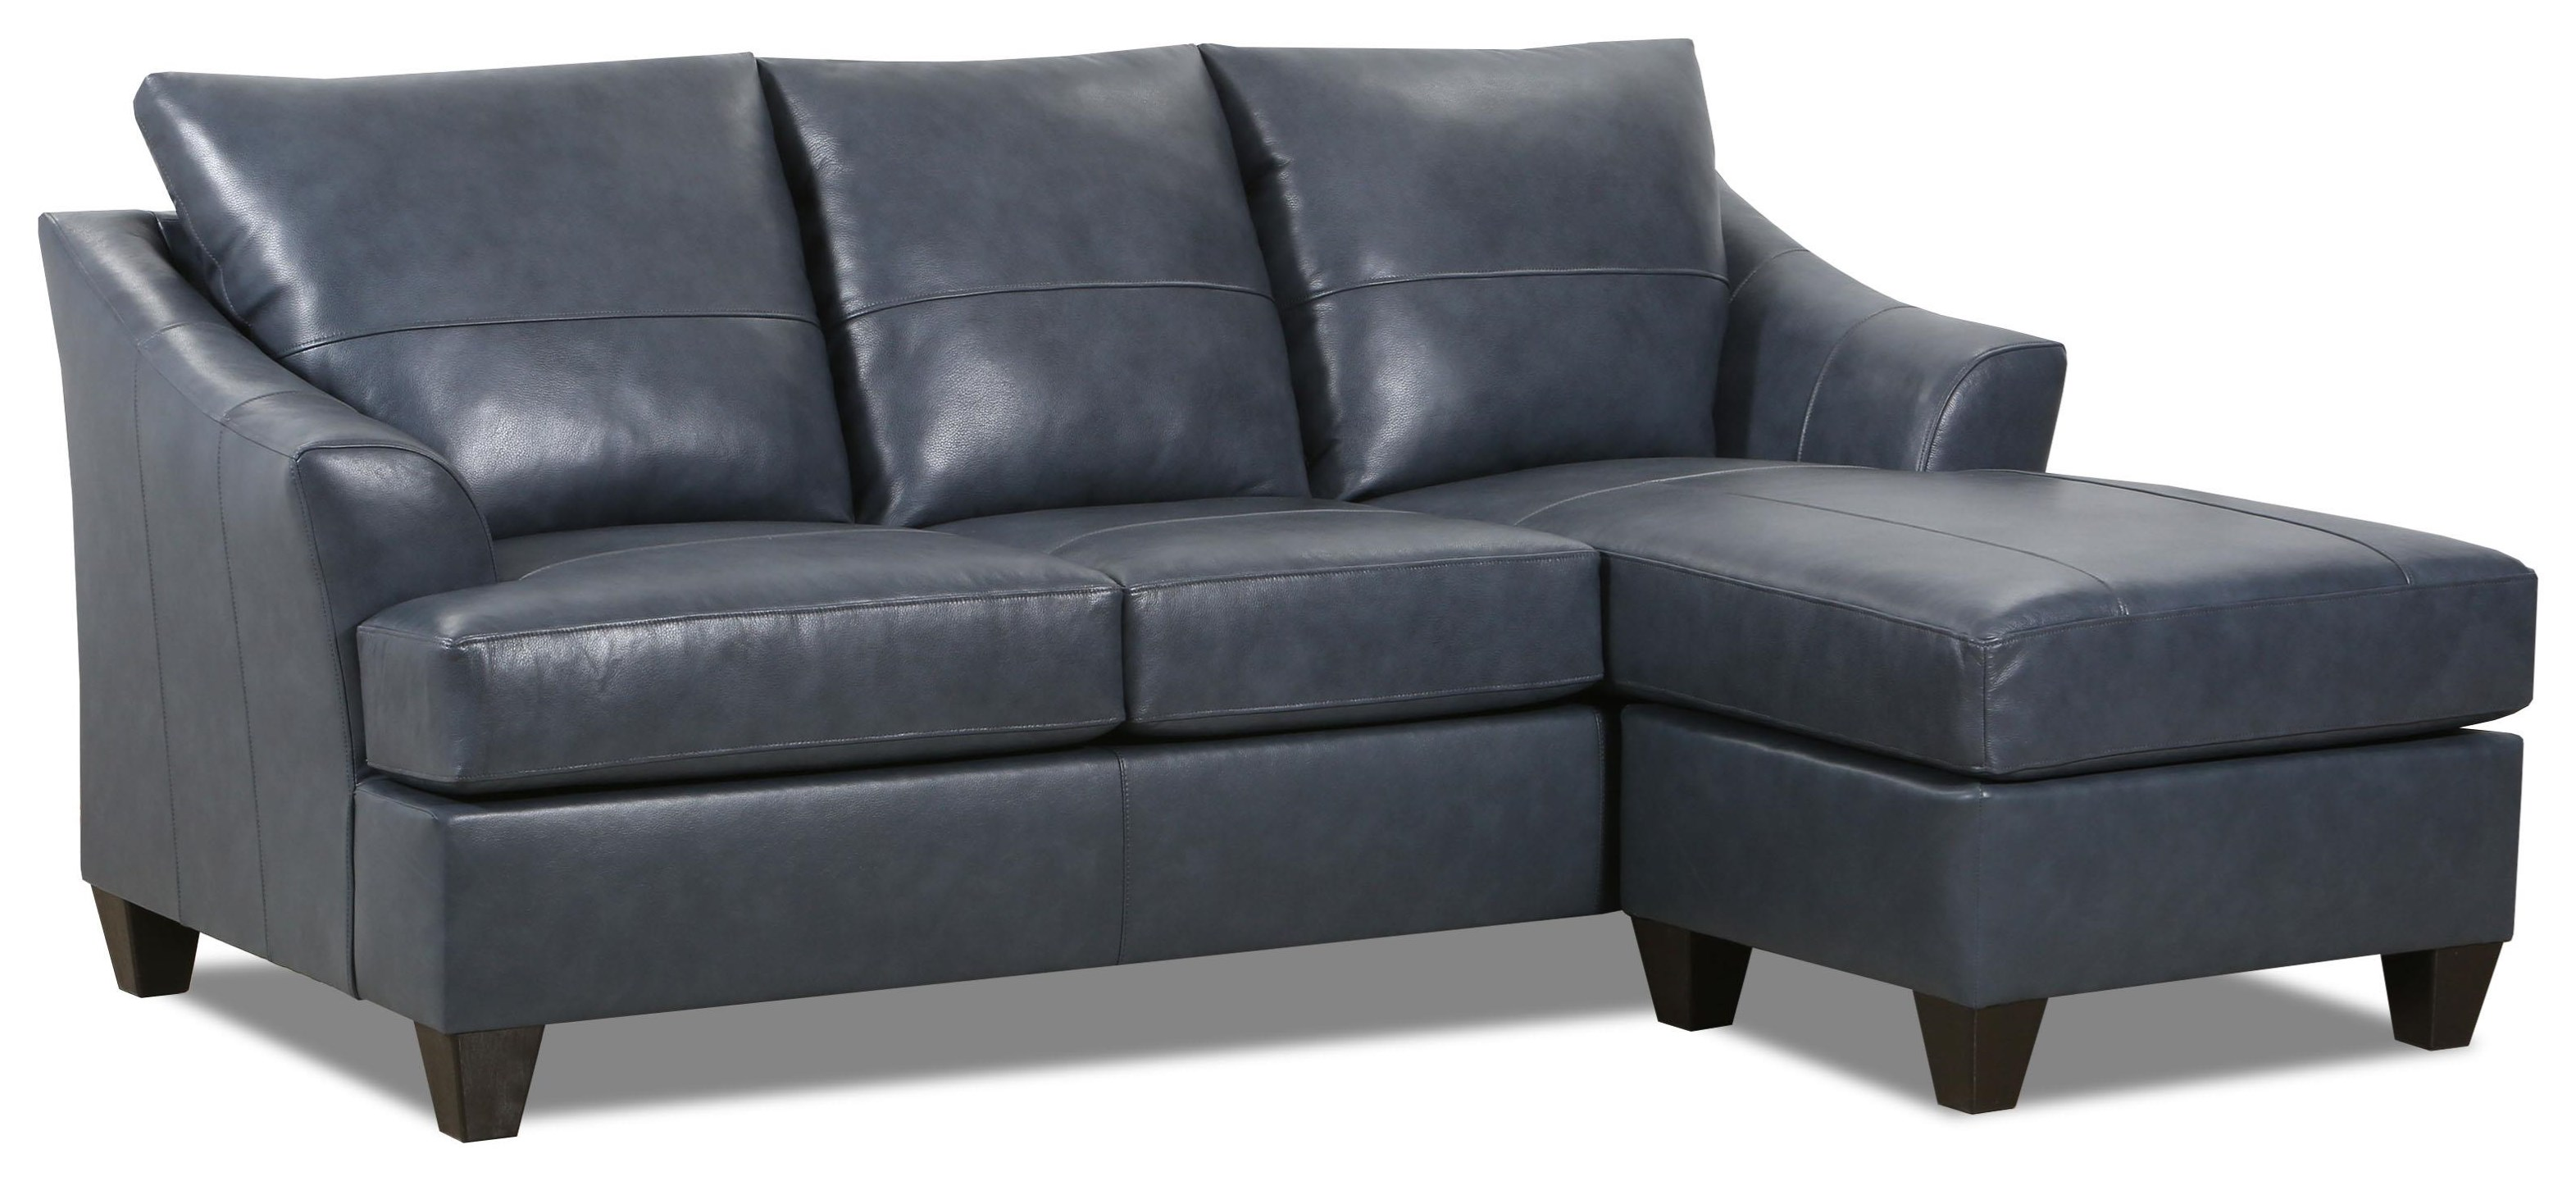 Novaleigh Leather Match Sofa Chaise